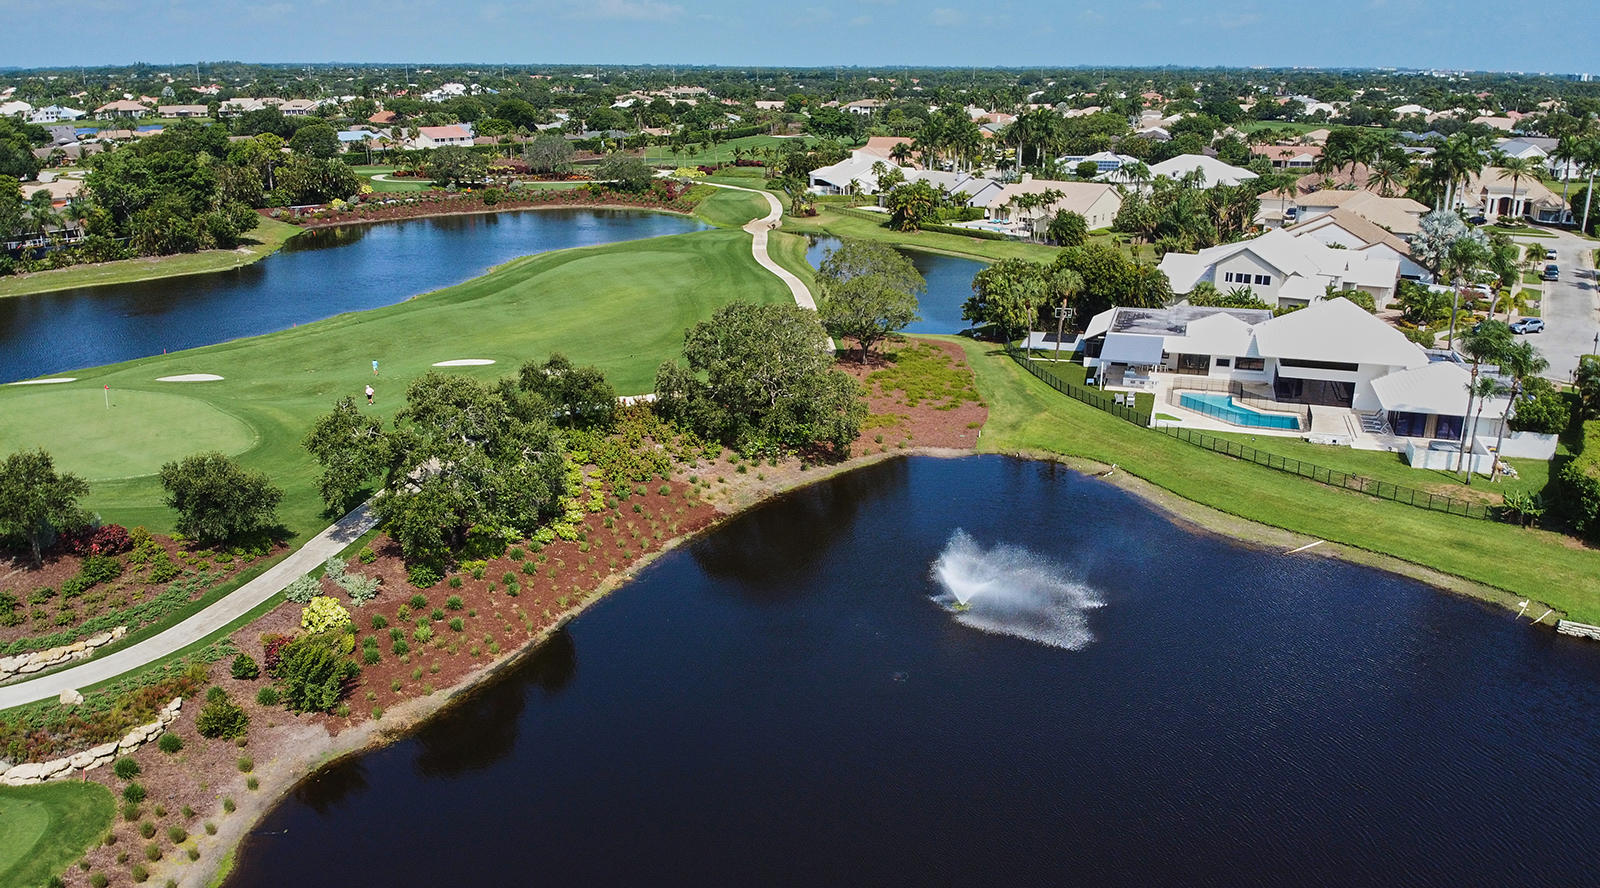 Boca Raton: Bocaire Country Club - listed at 1,499,999 (17207 Shaddock Lane)